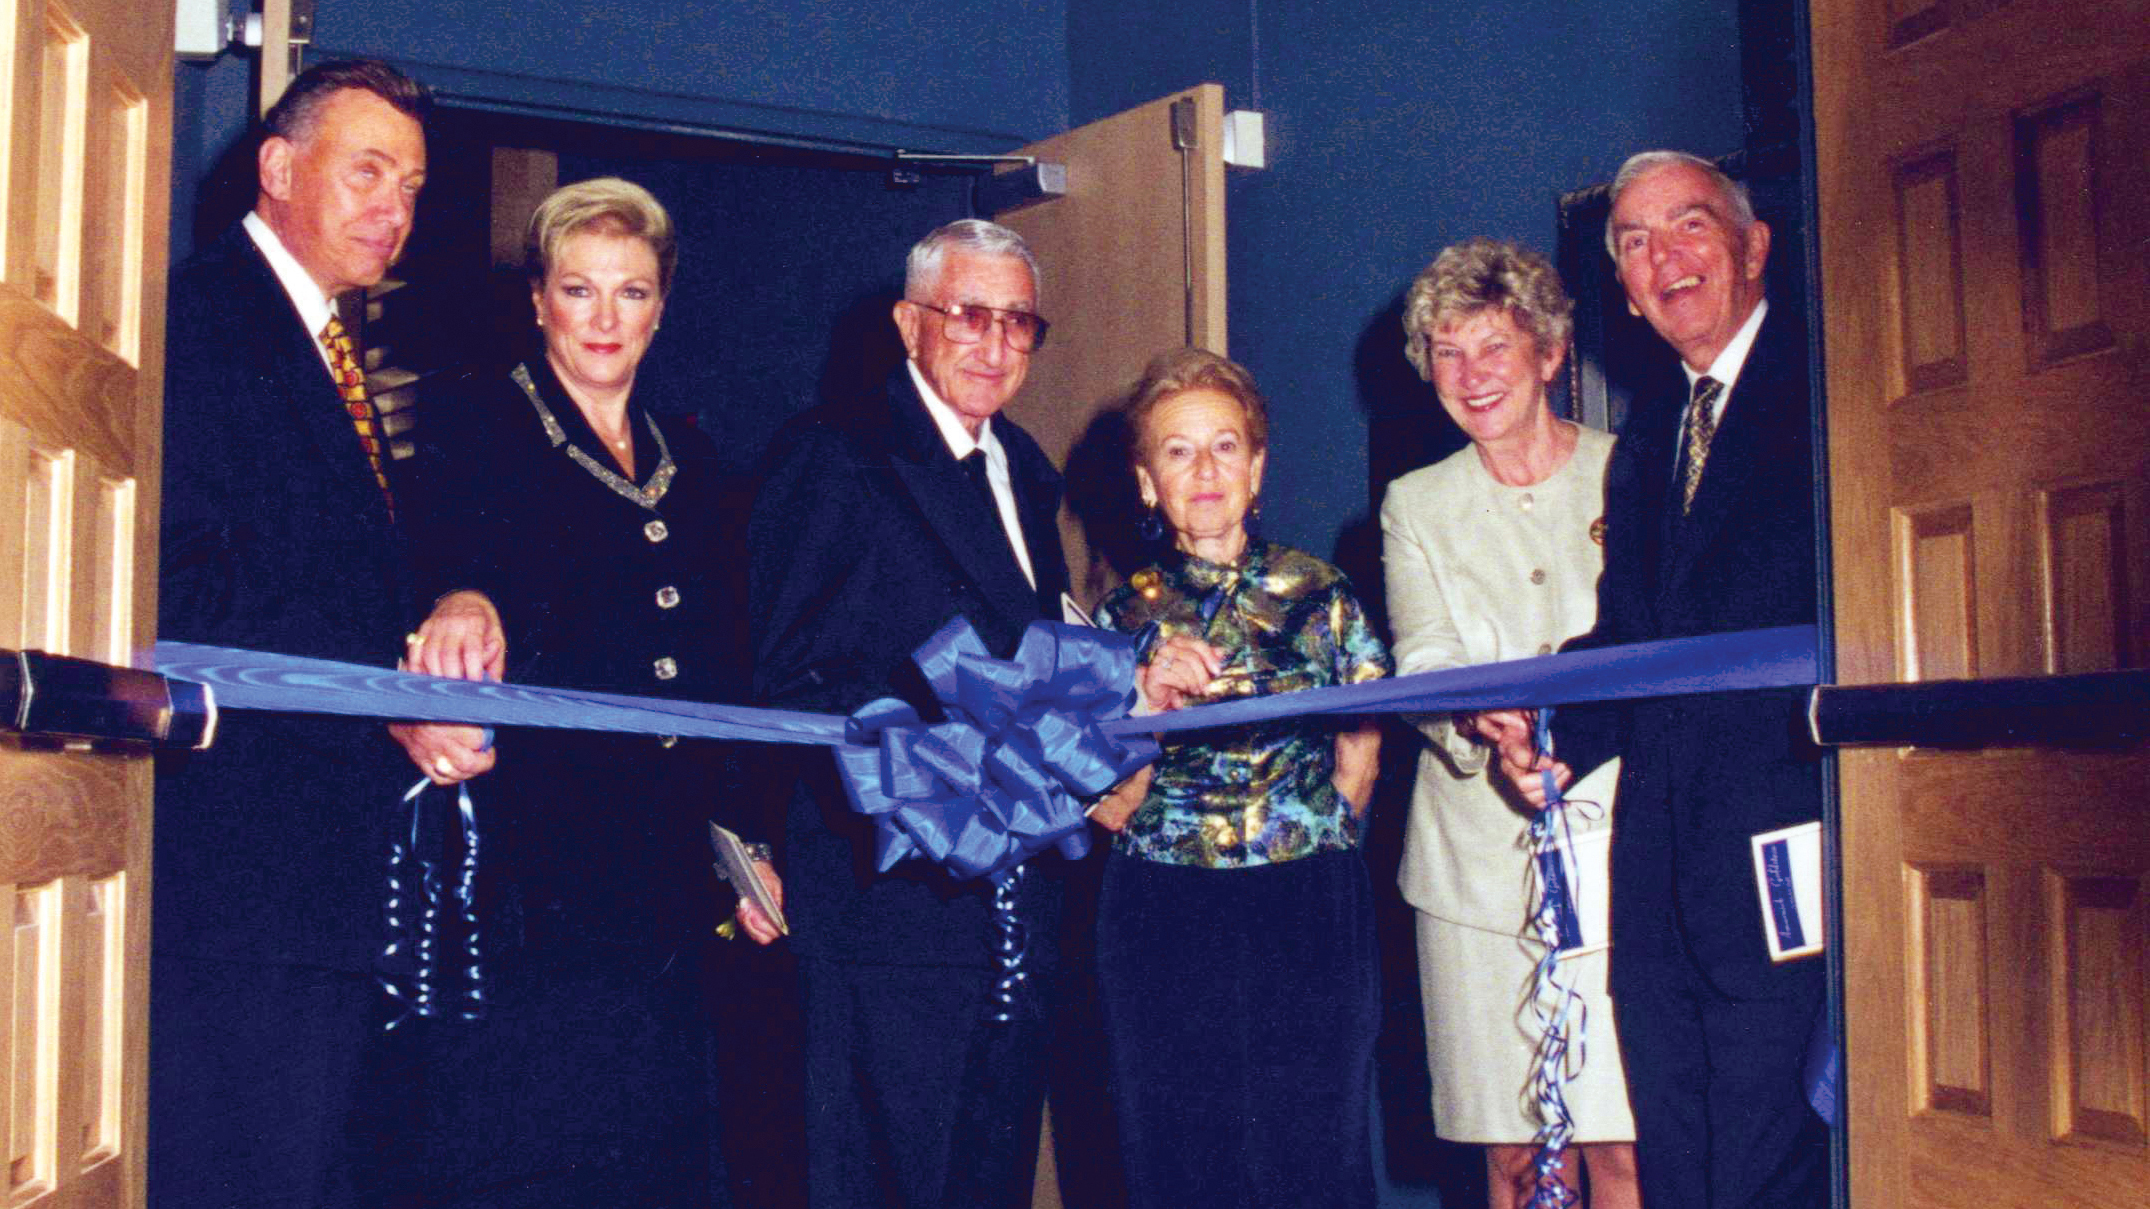 2001 Jan Grand Opening of the Amarnick Goldstein Concert Hall